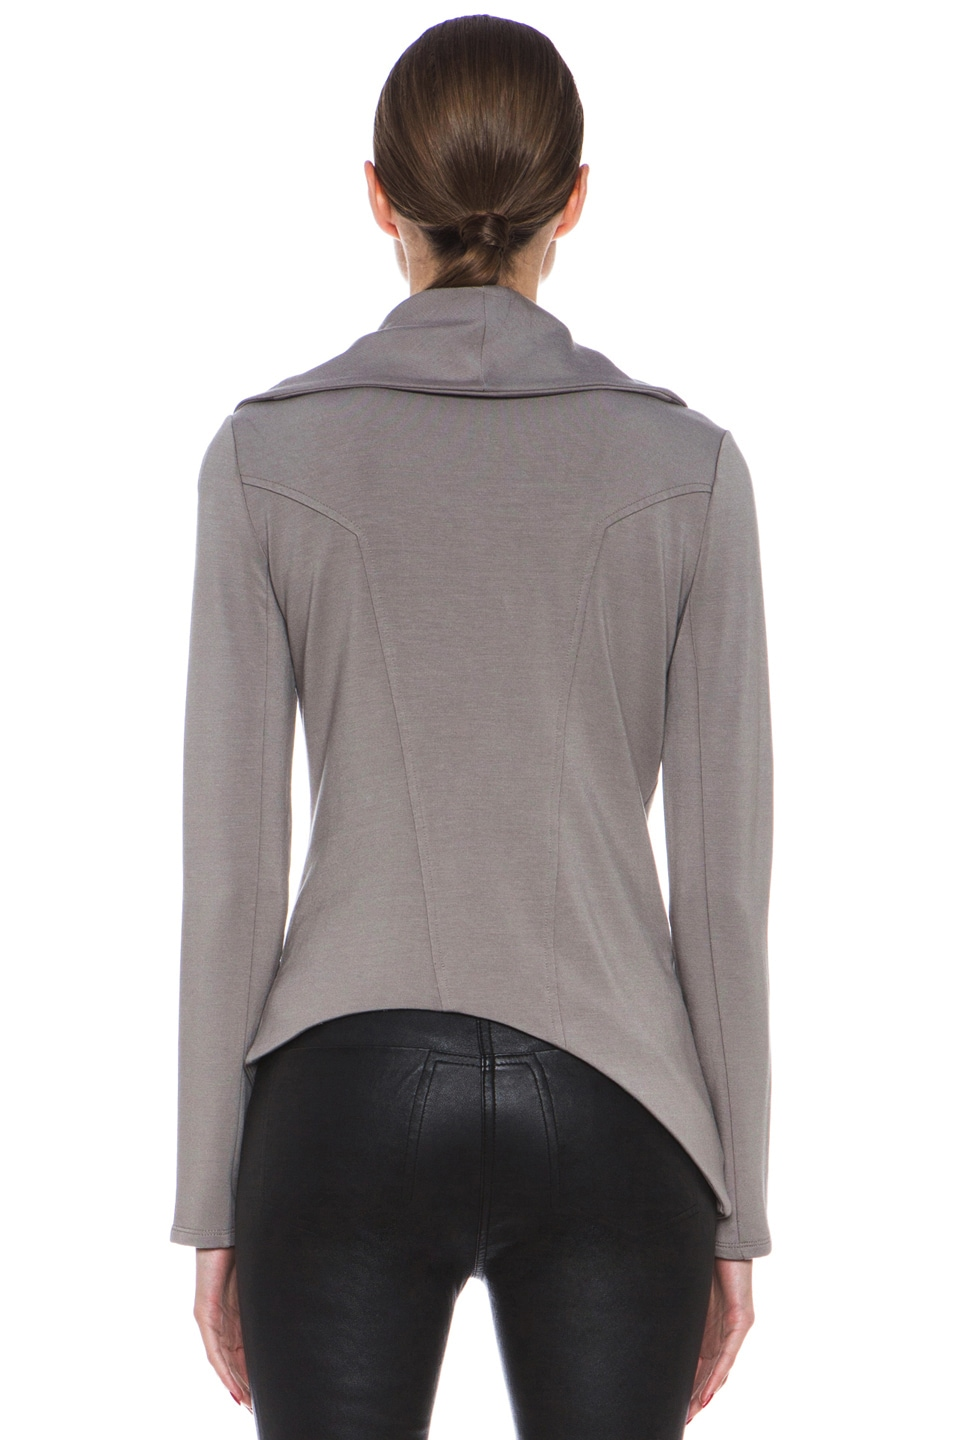 Image 5 of HELMUT Helmut Lang Villus Zip Up Sweatshirt in Wharf